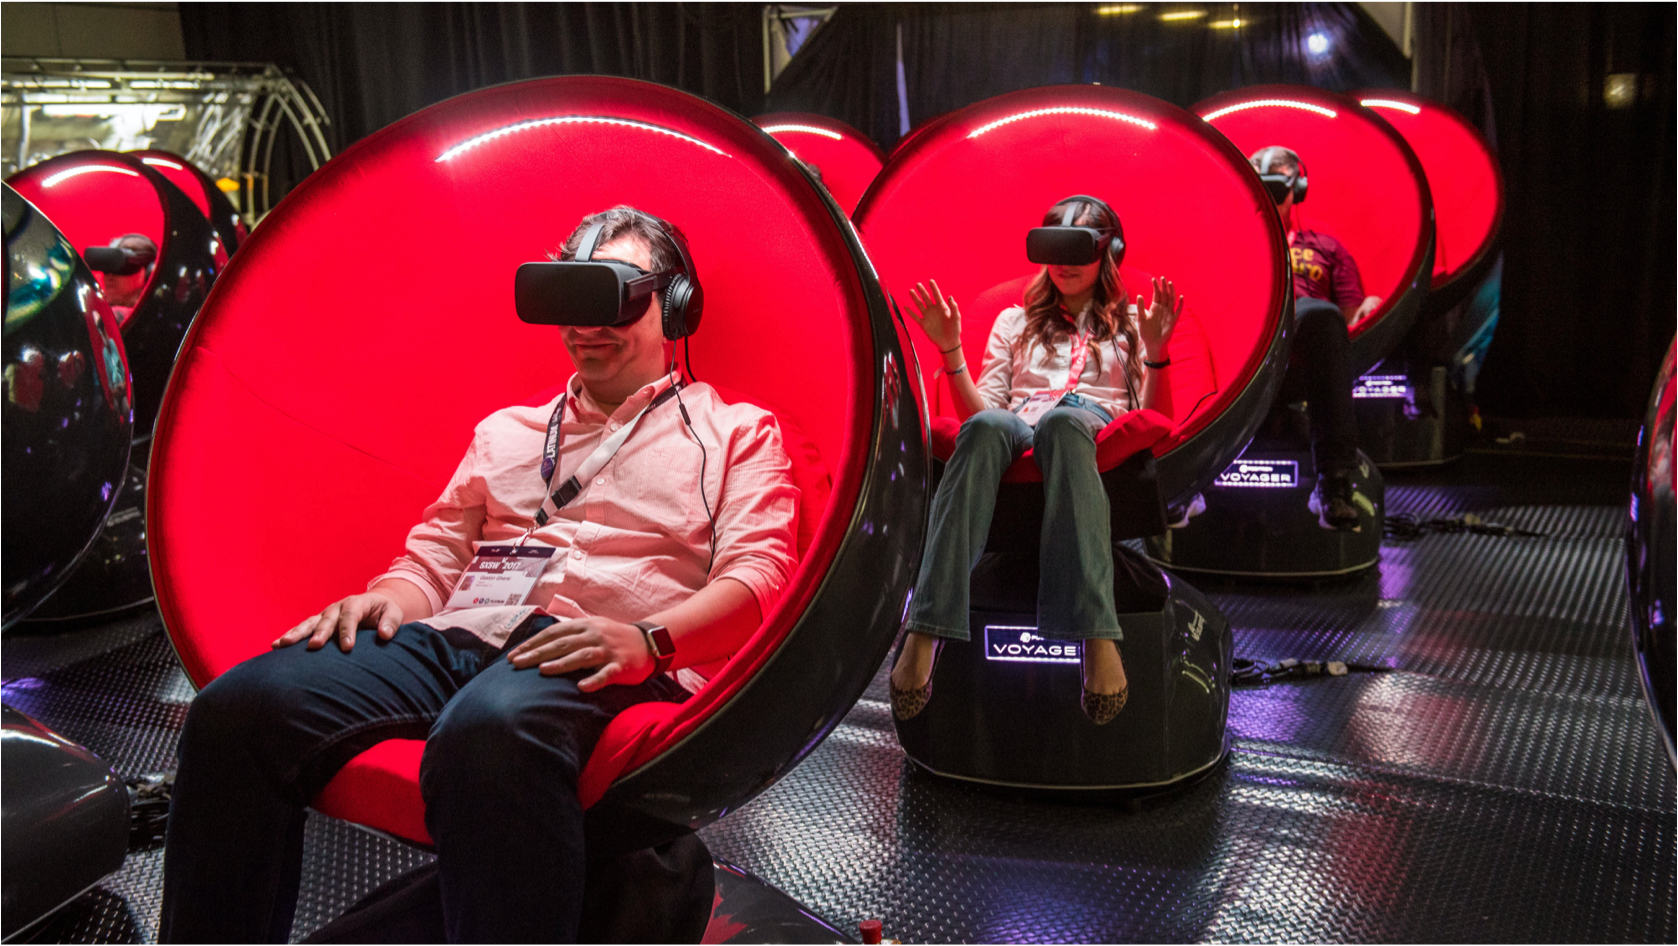 People sitting in red chairs in a virtual re